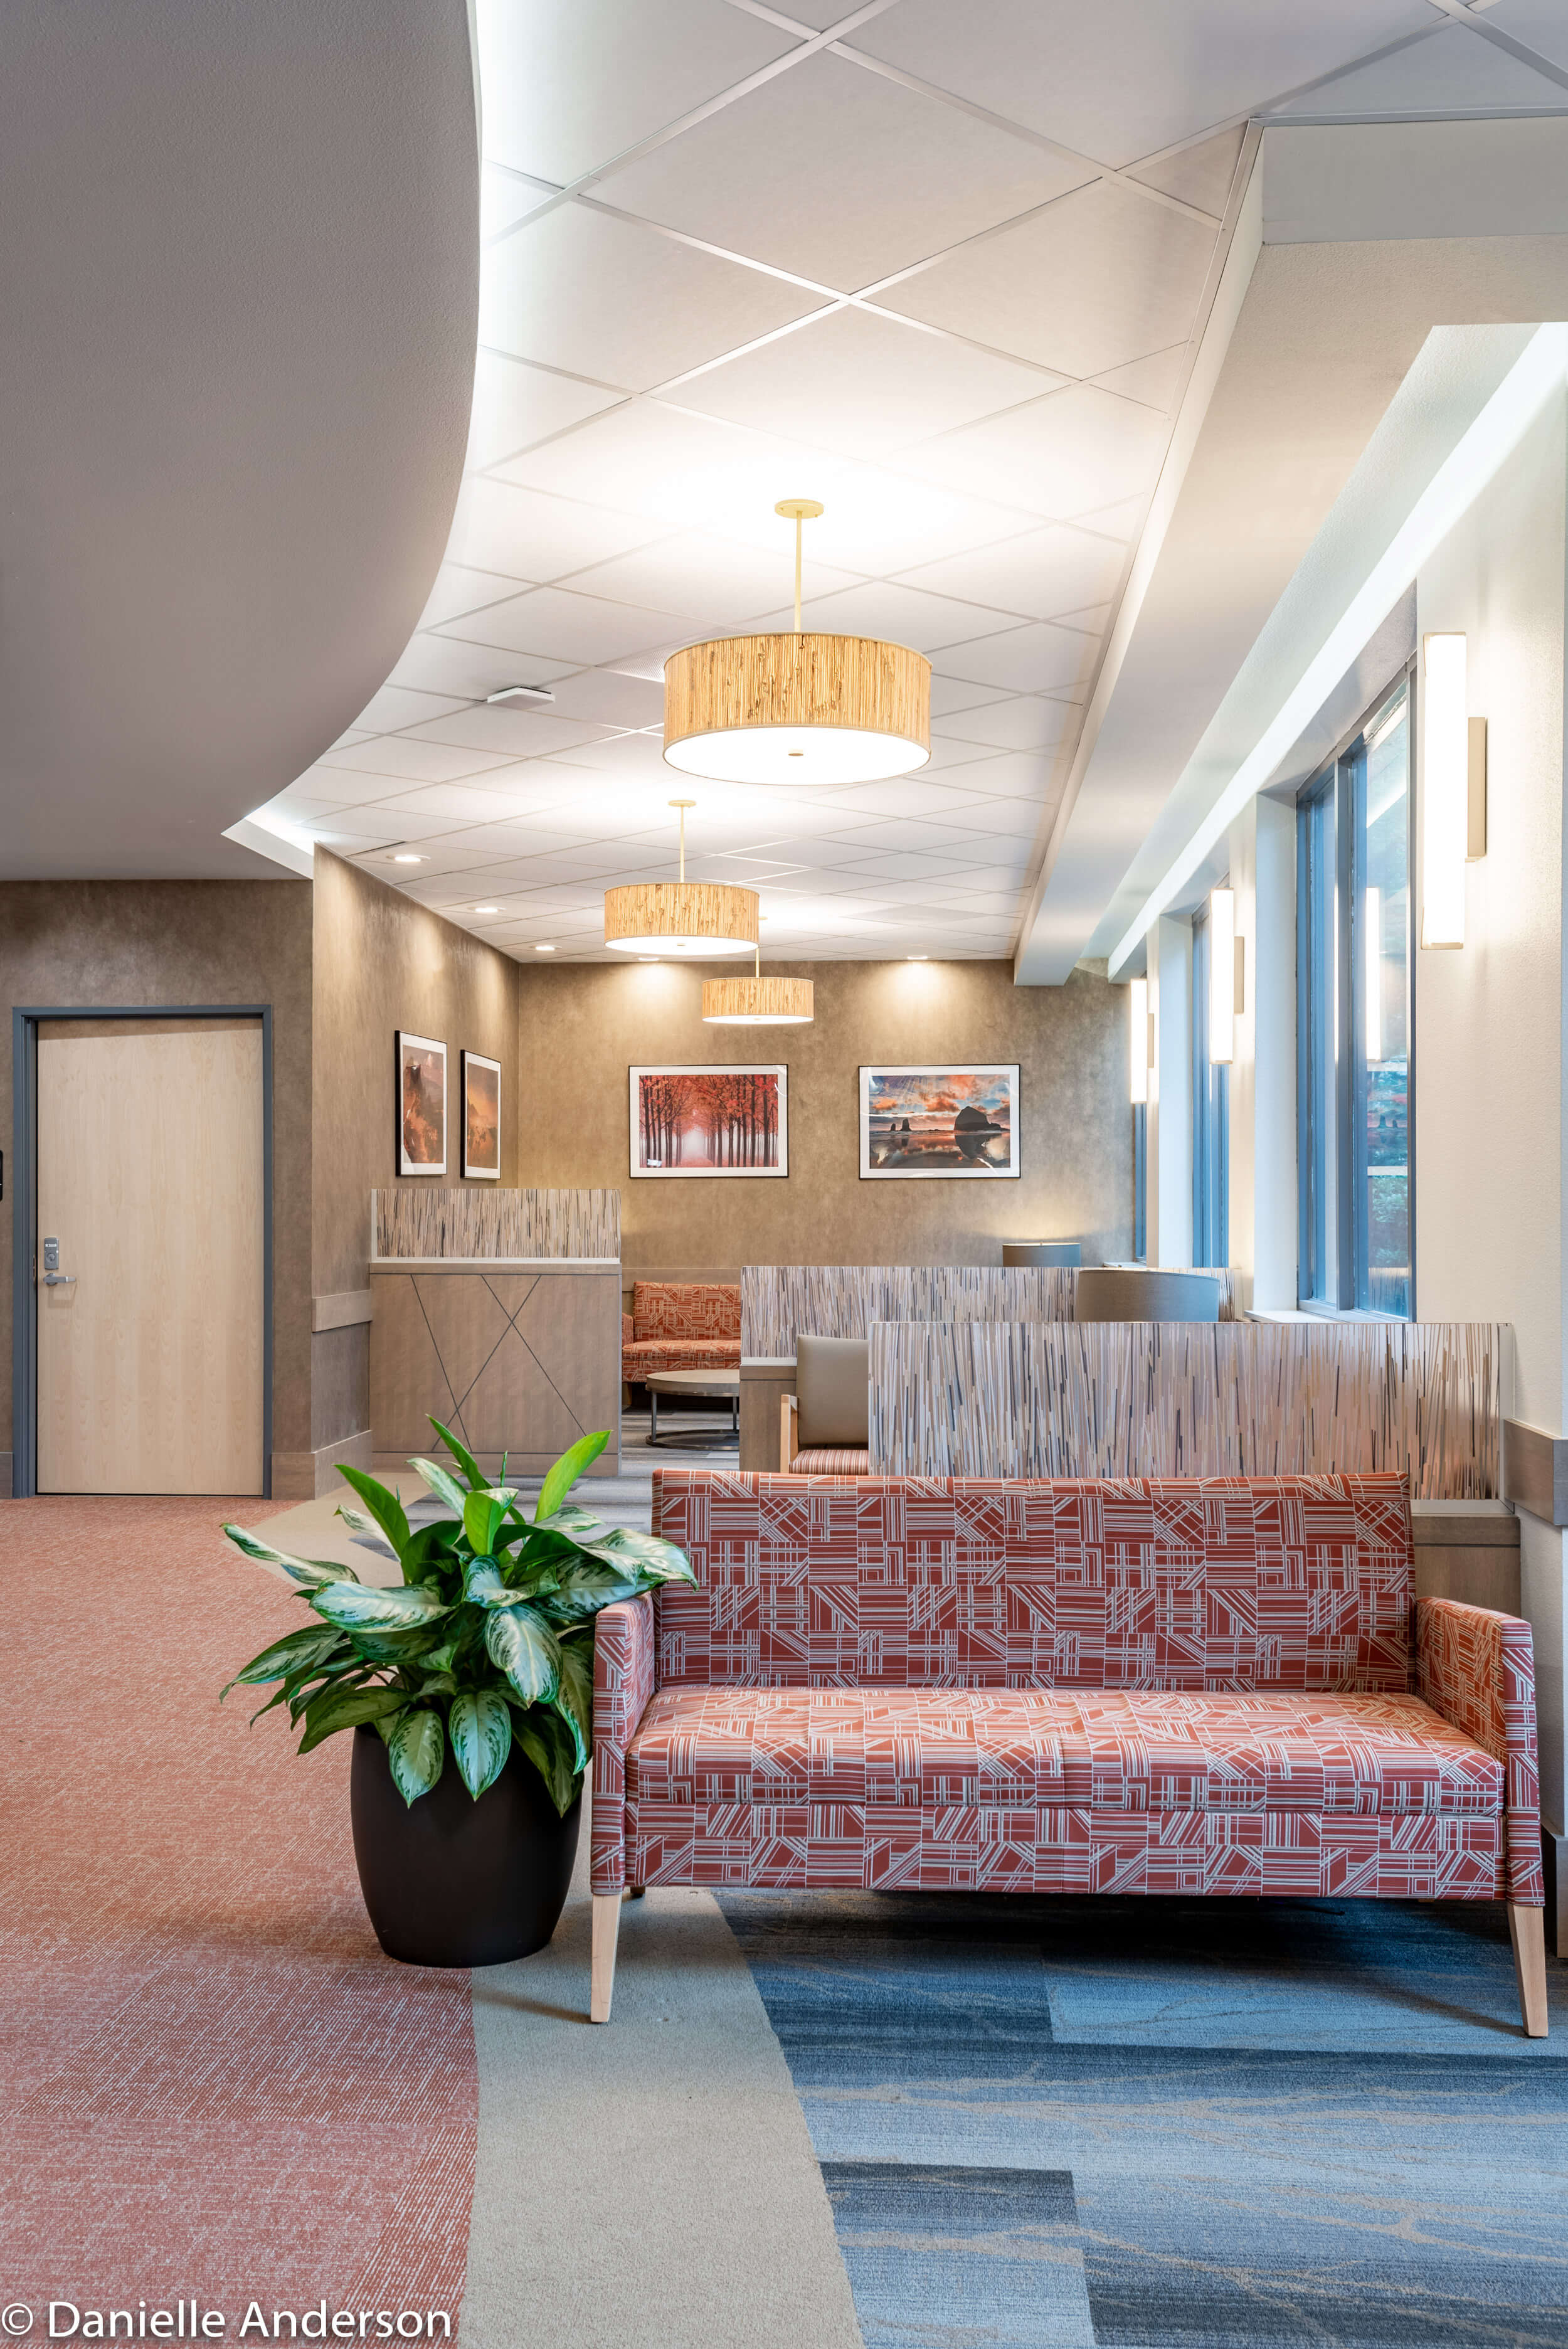 OregonHeartCenter WaitingRoom